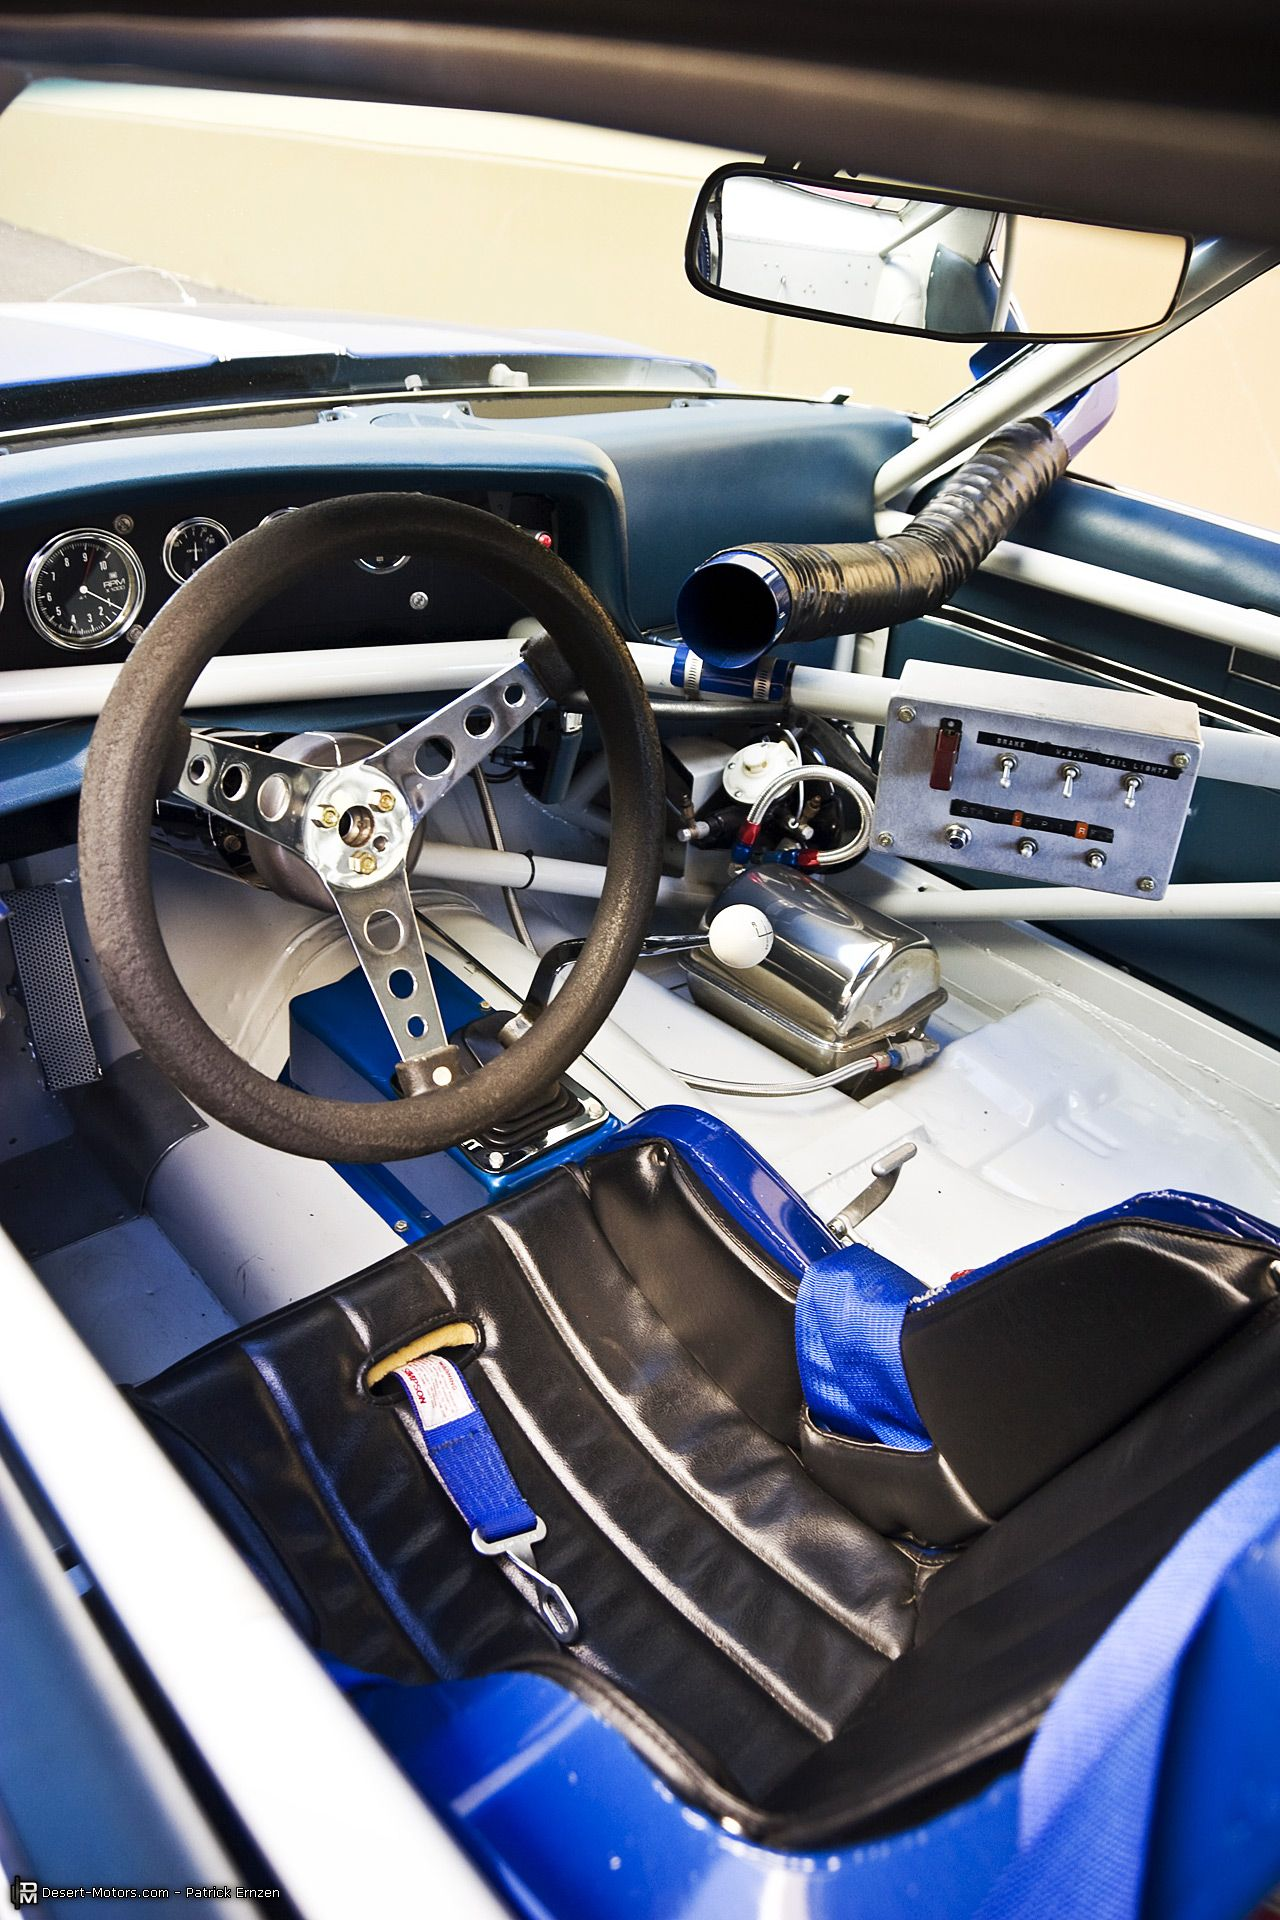 1971 Trans Am AMC Javelin Mark Donohue Championship Car Interior